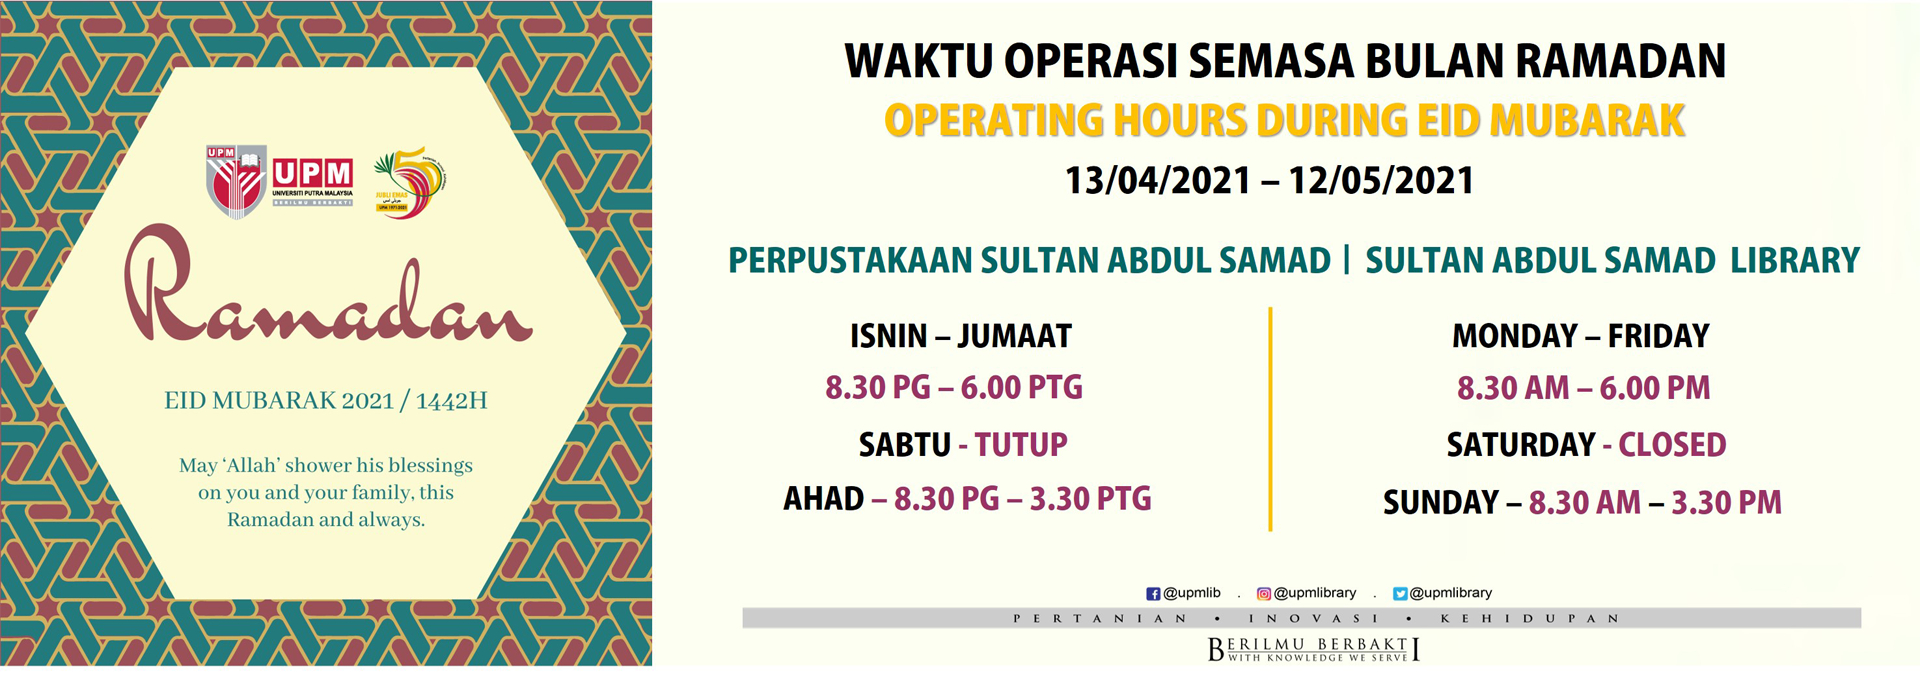 Library Operating Hours during Eid Mubarak 2021